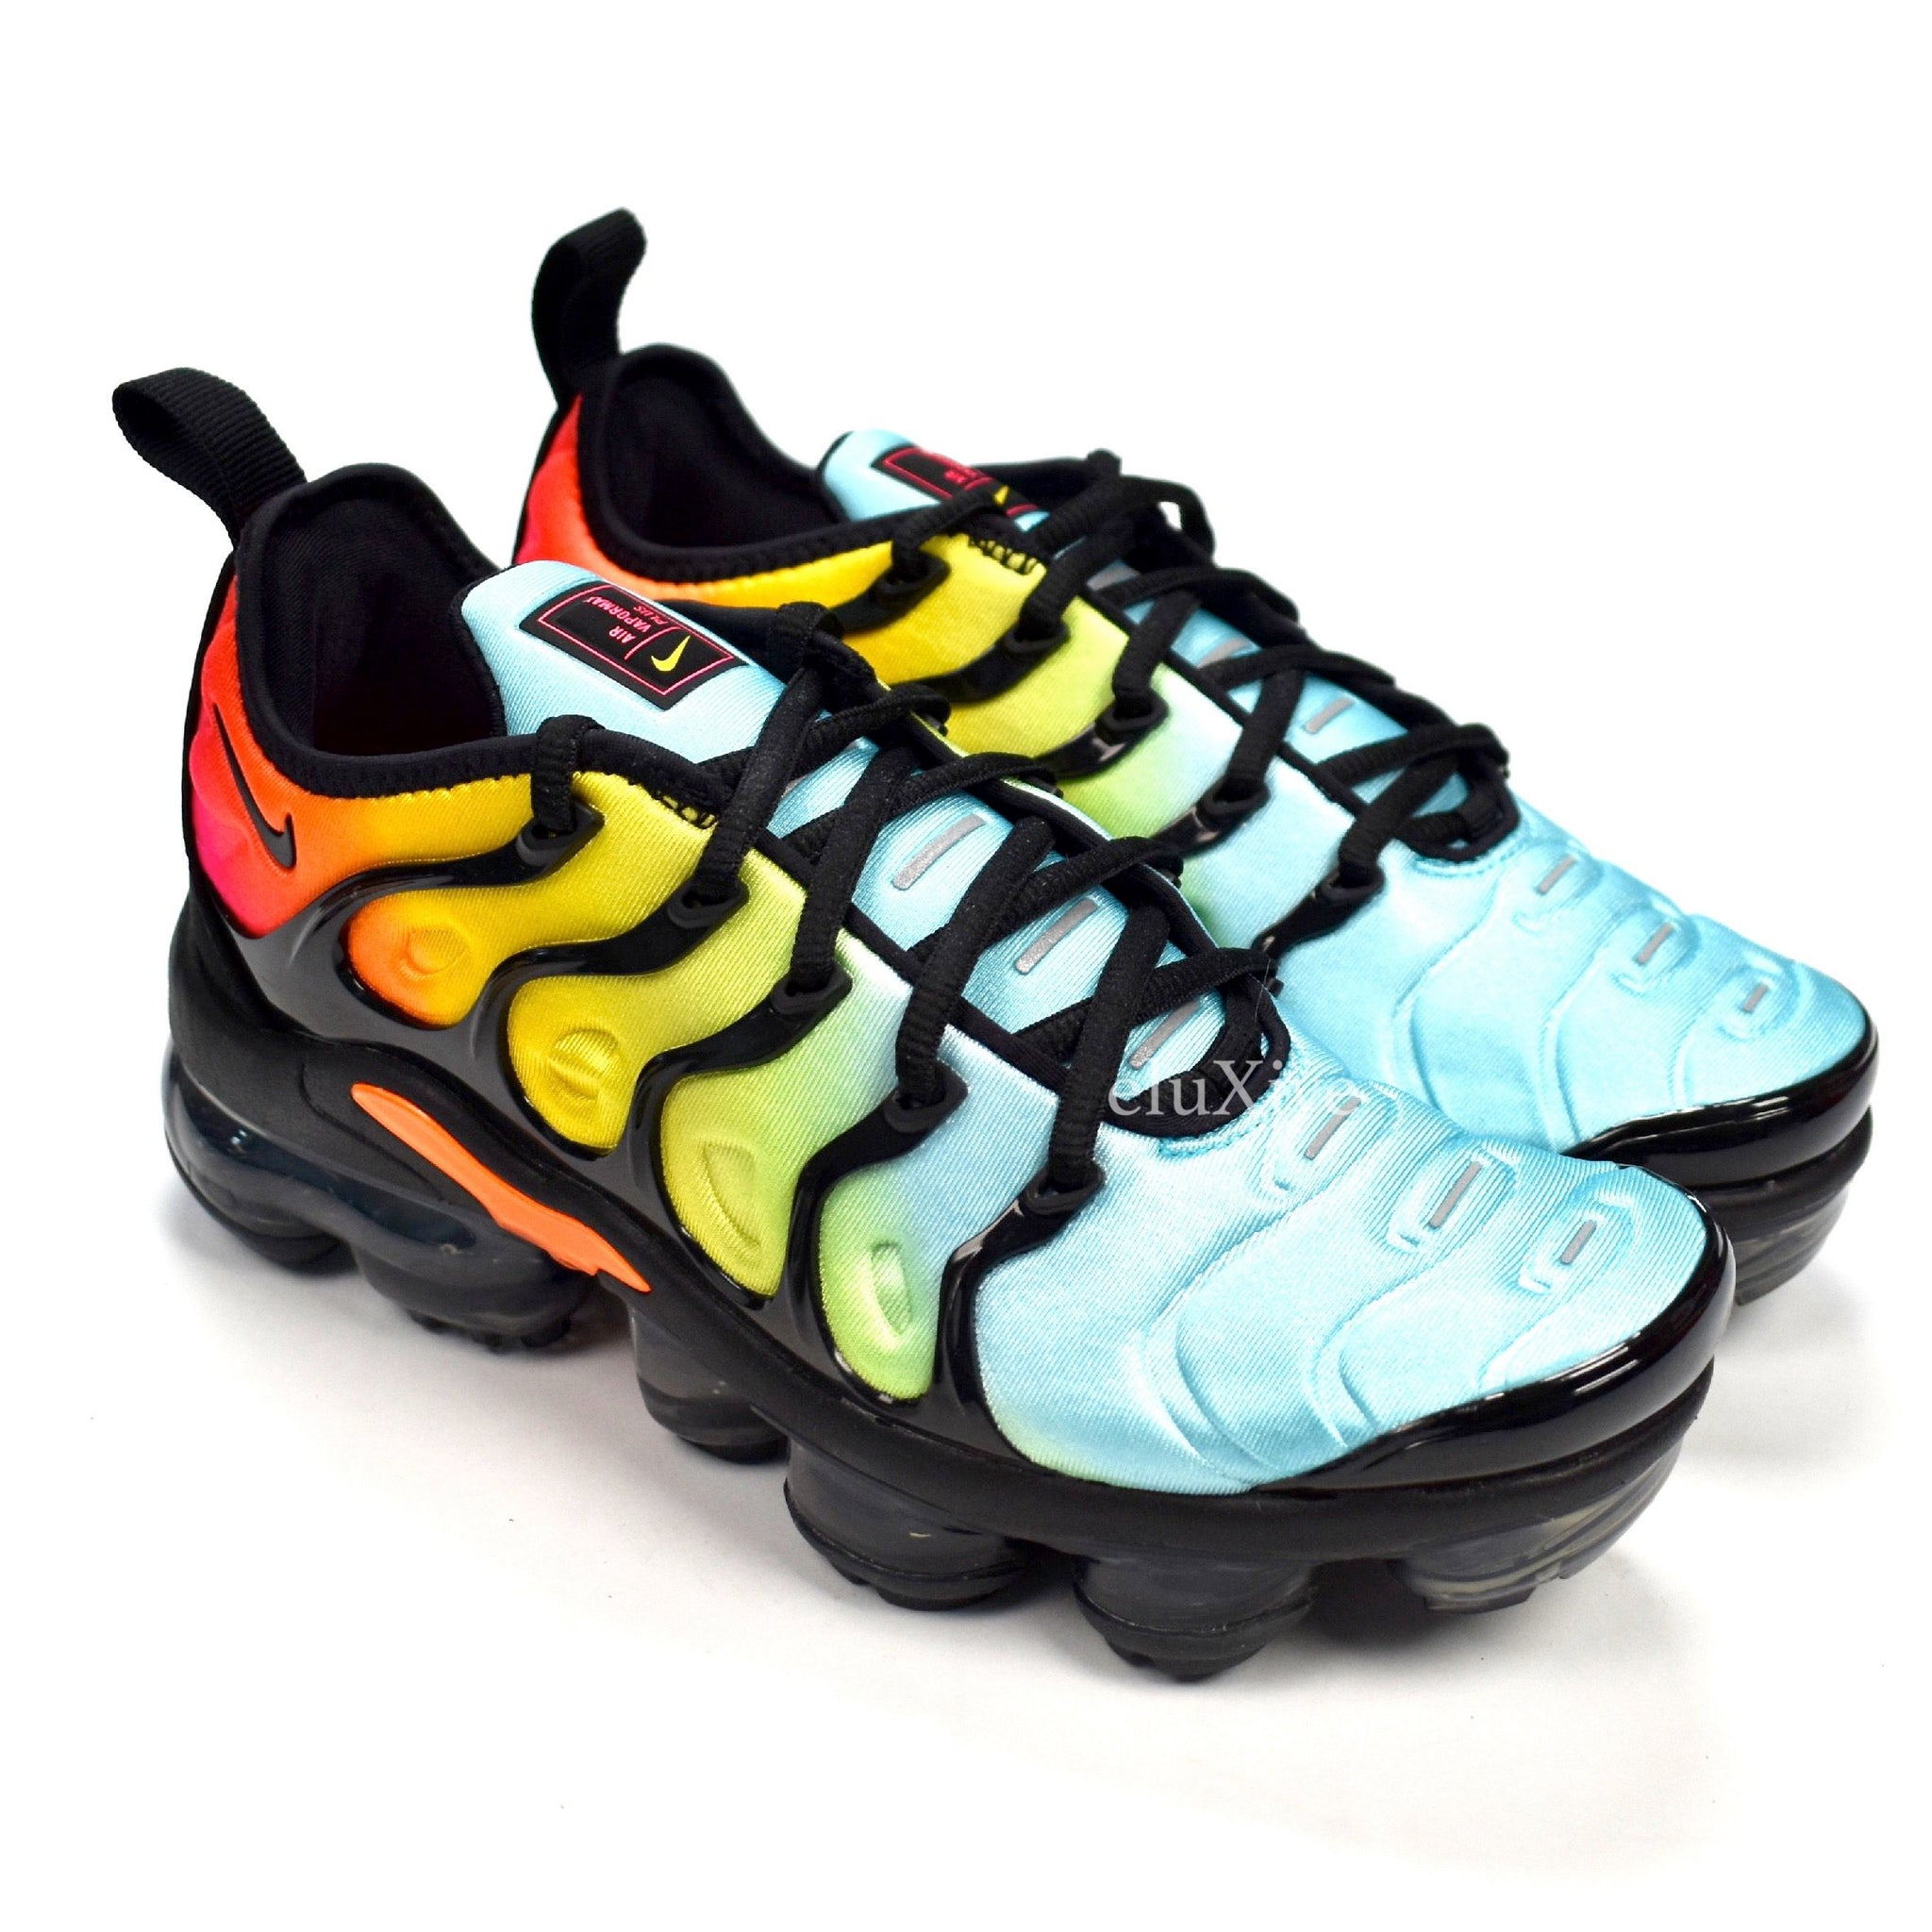 96ba3e9543a ... release date nike air vapormax plus white yellow uk nike air vapormax  plus rainbow womens ffab3 ...